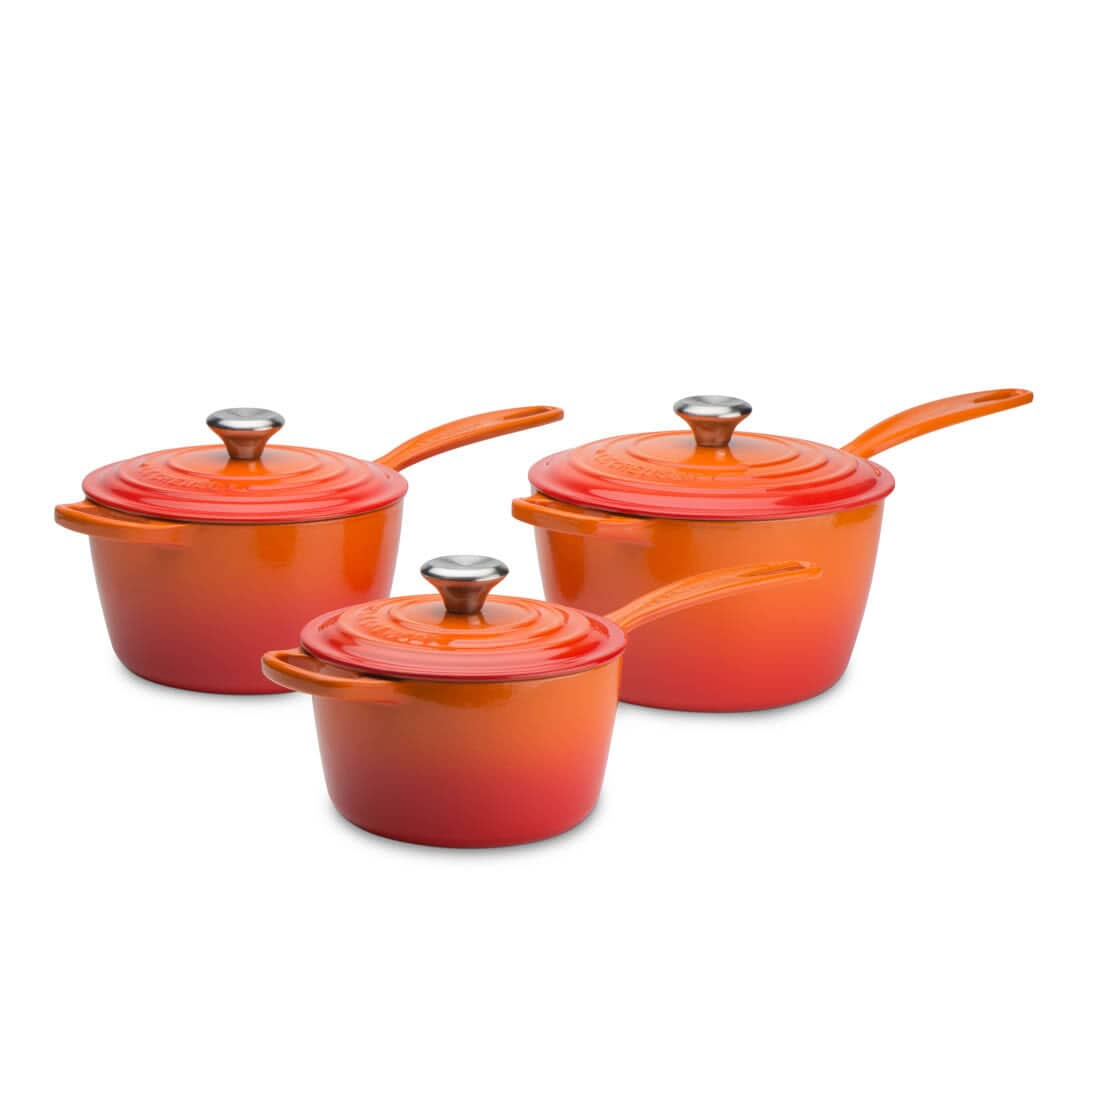 le creuset signature cast iron 3 piece saucepan set. Black Bedroom Furniture Sets. Home Design Ideas